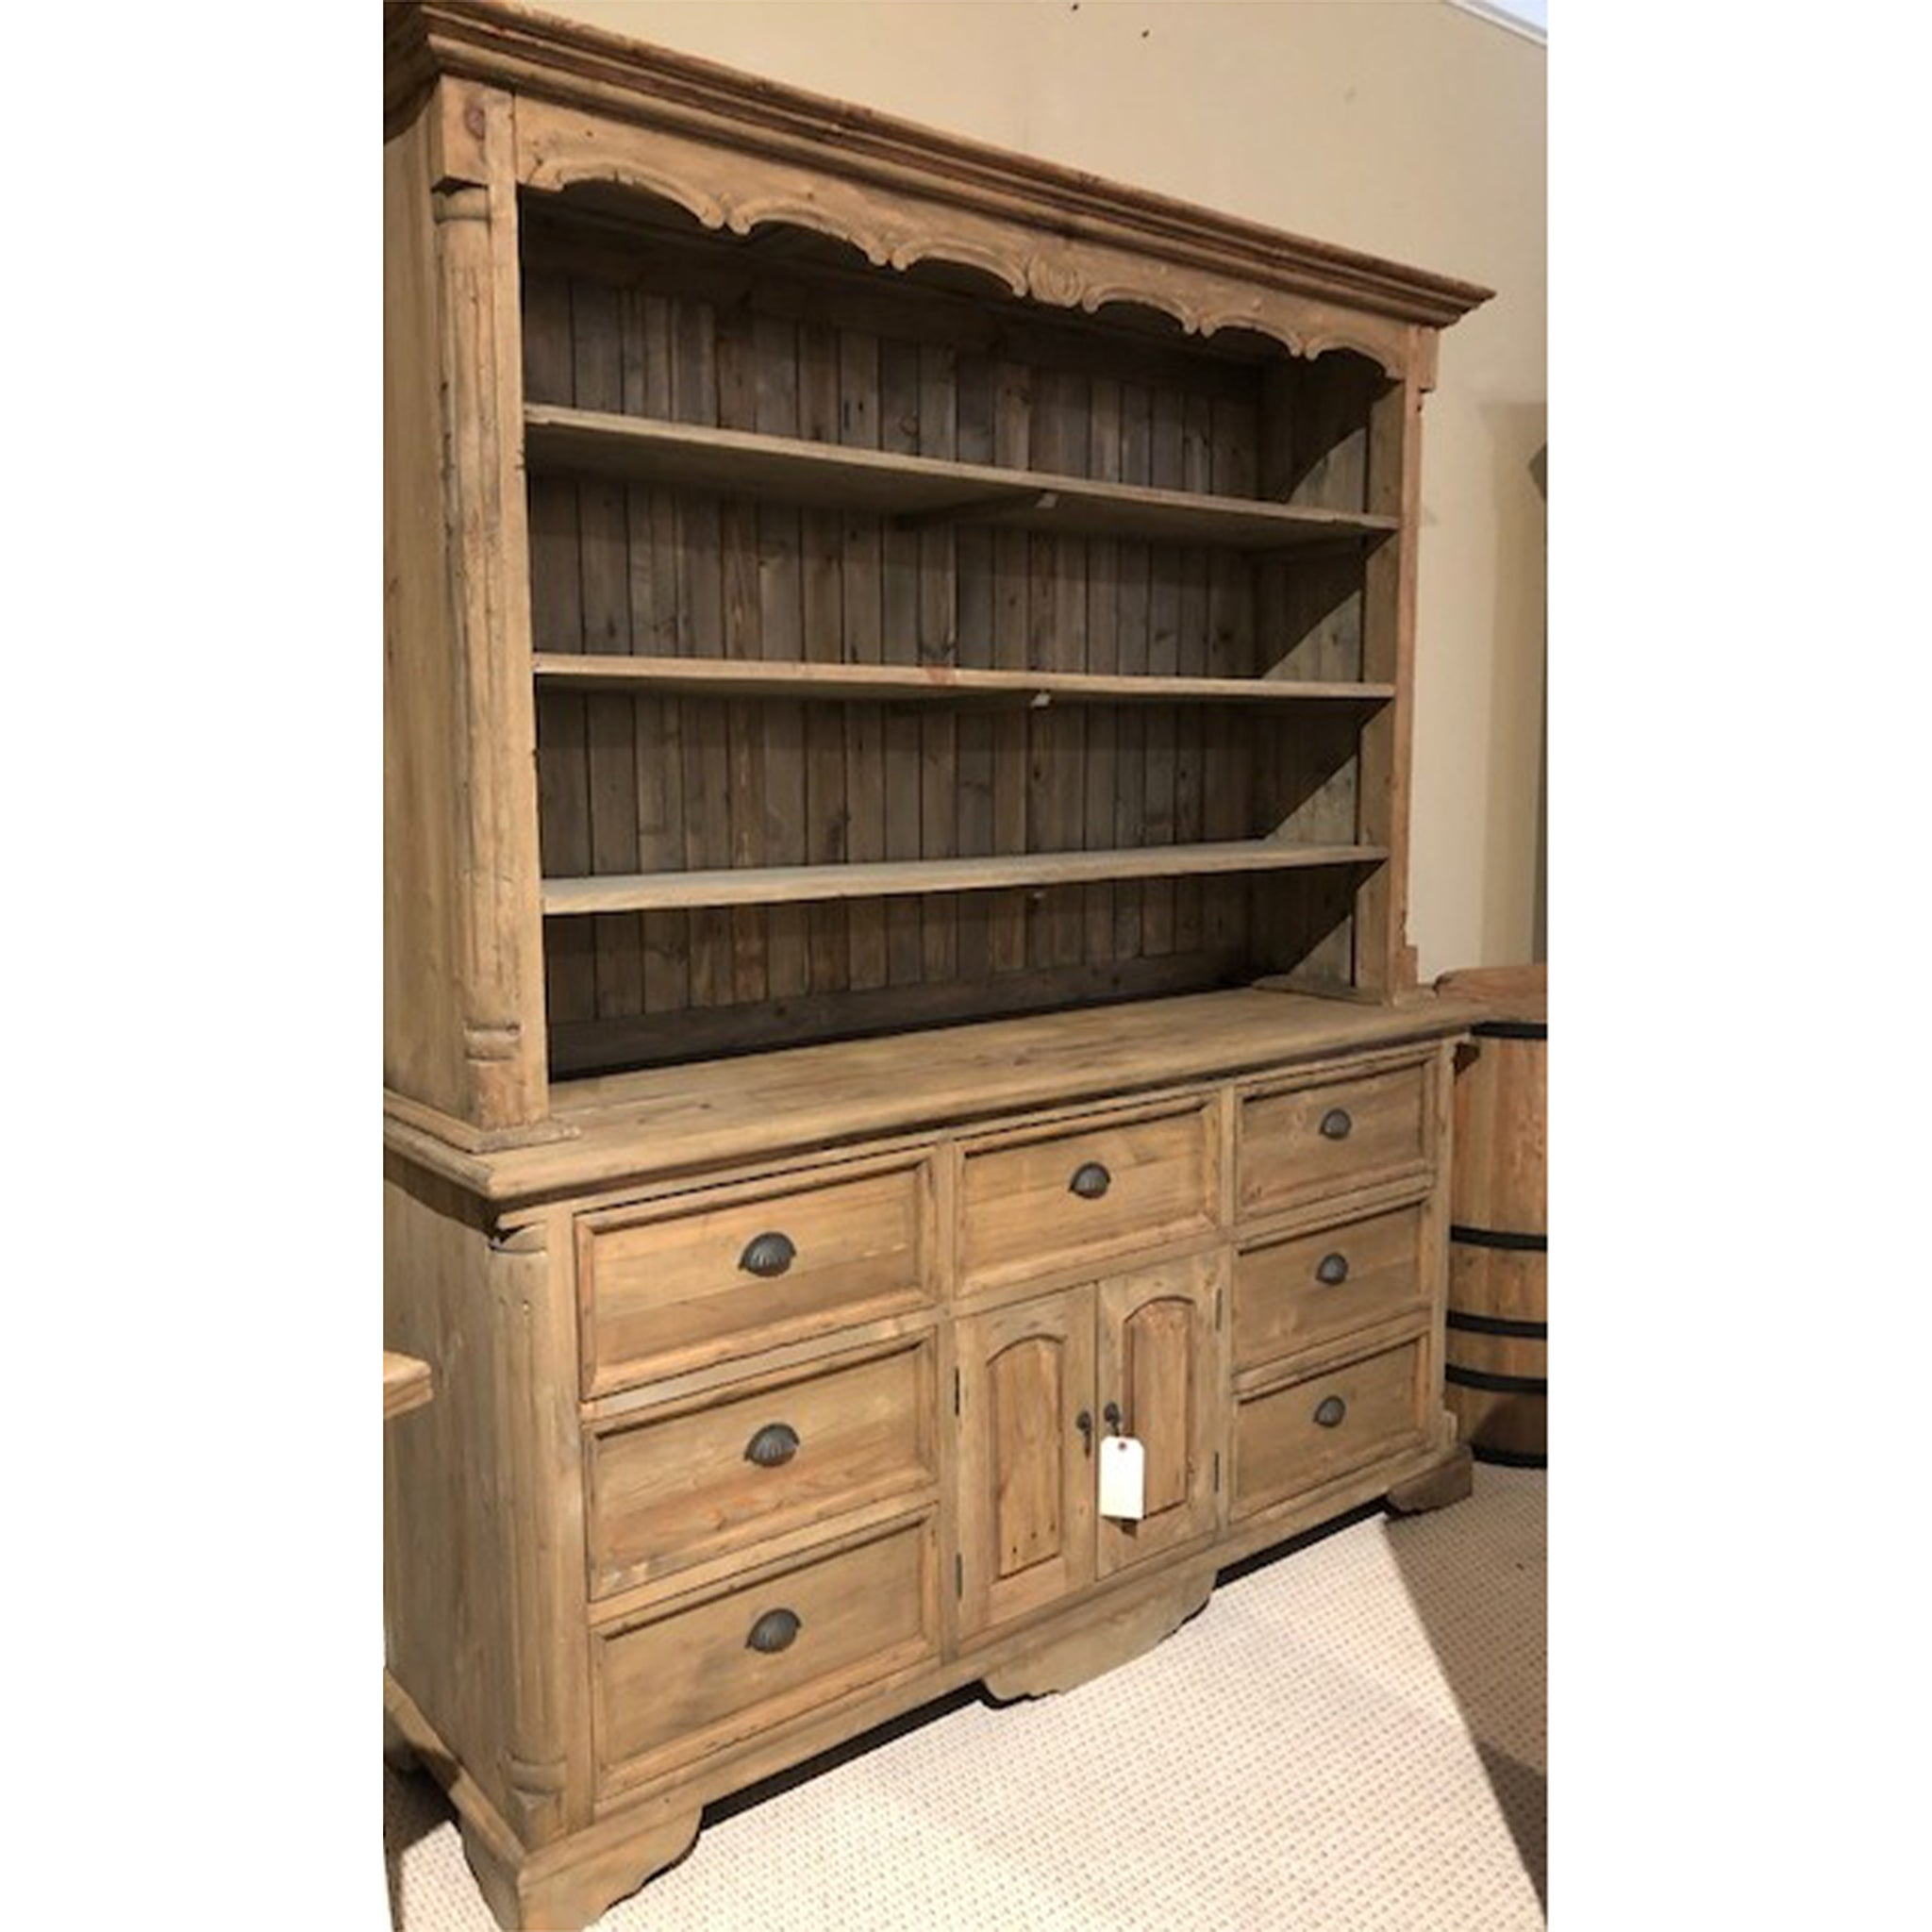 Farmhouse Buffet and Hutch Natural - Furniture on Main